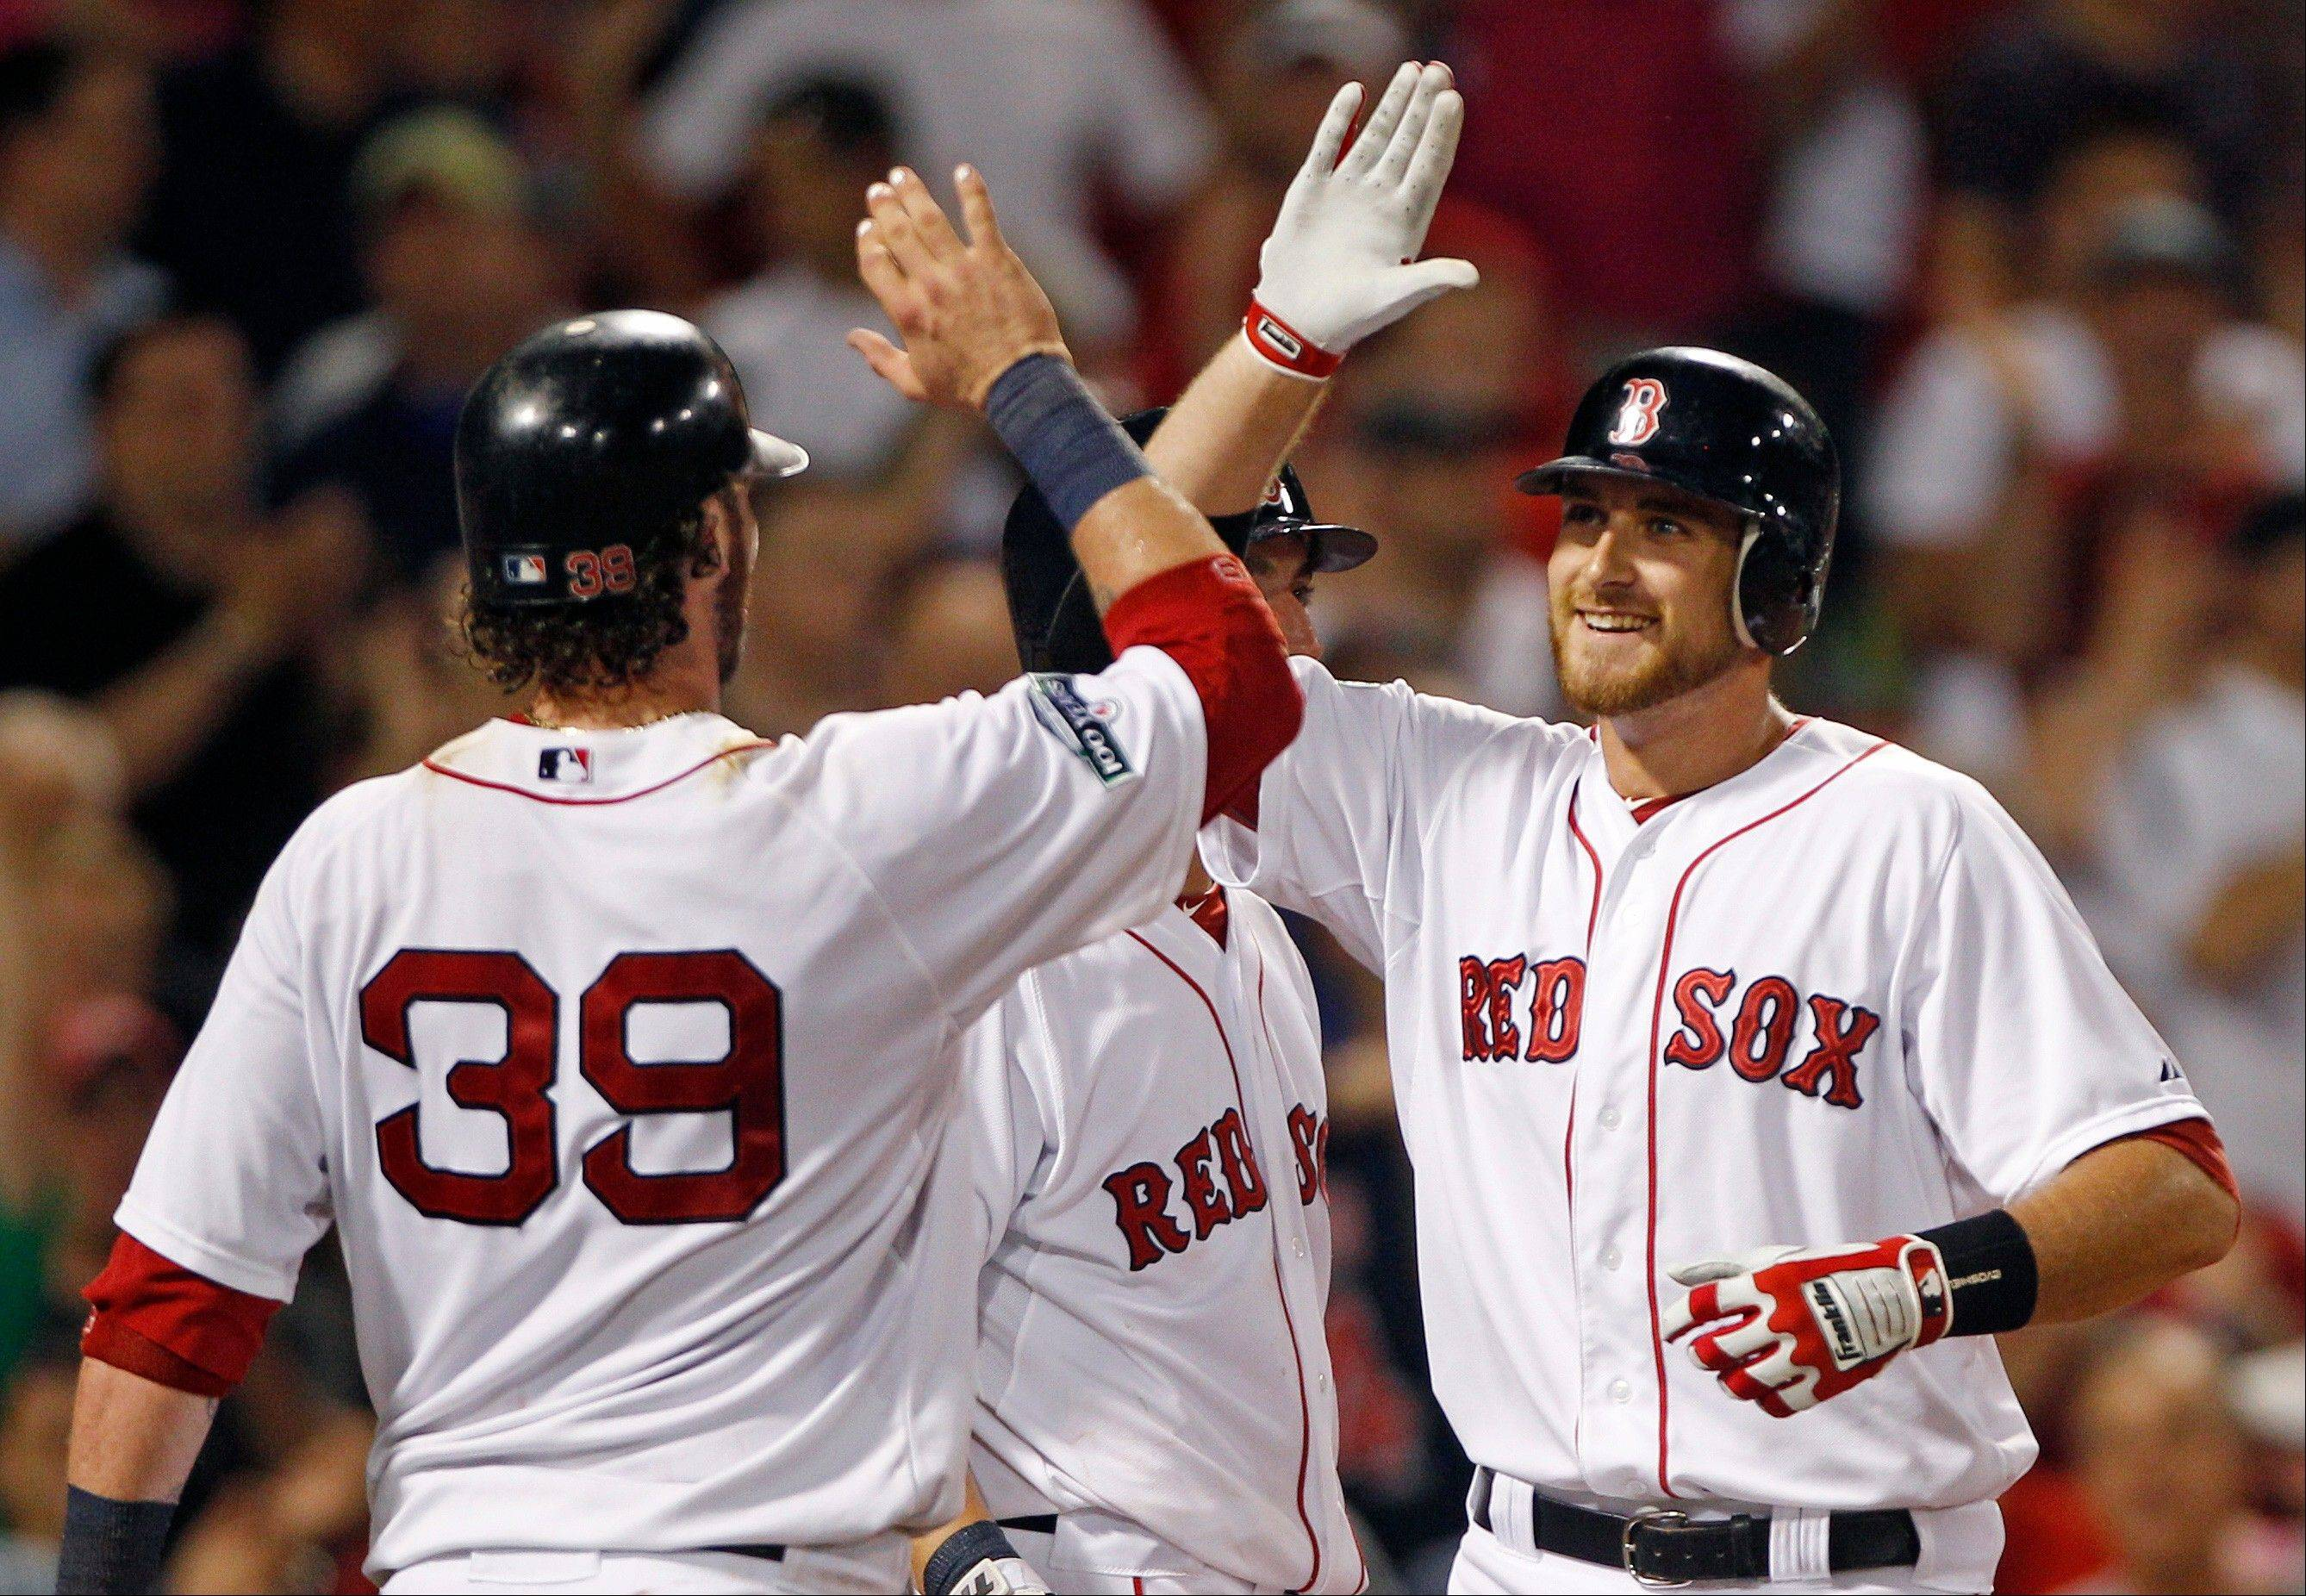 Boston Red Sox third baseman Will Middlebrooks, right, is congratulated by Jarrod Saltalamacchia (39) after his two-run home run against the Miami Marlins Thursday during the eighth inning at Fenway Park in Boston.